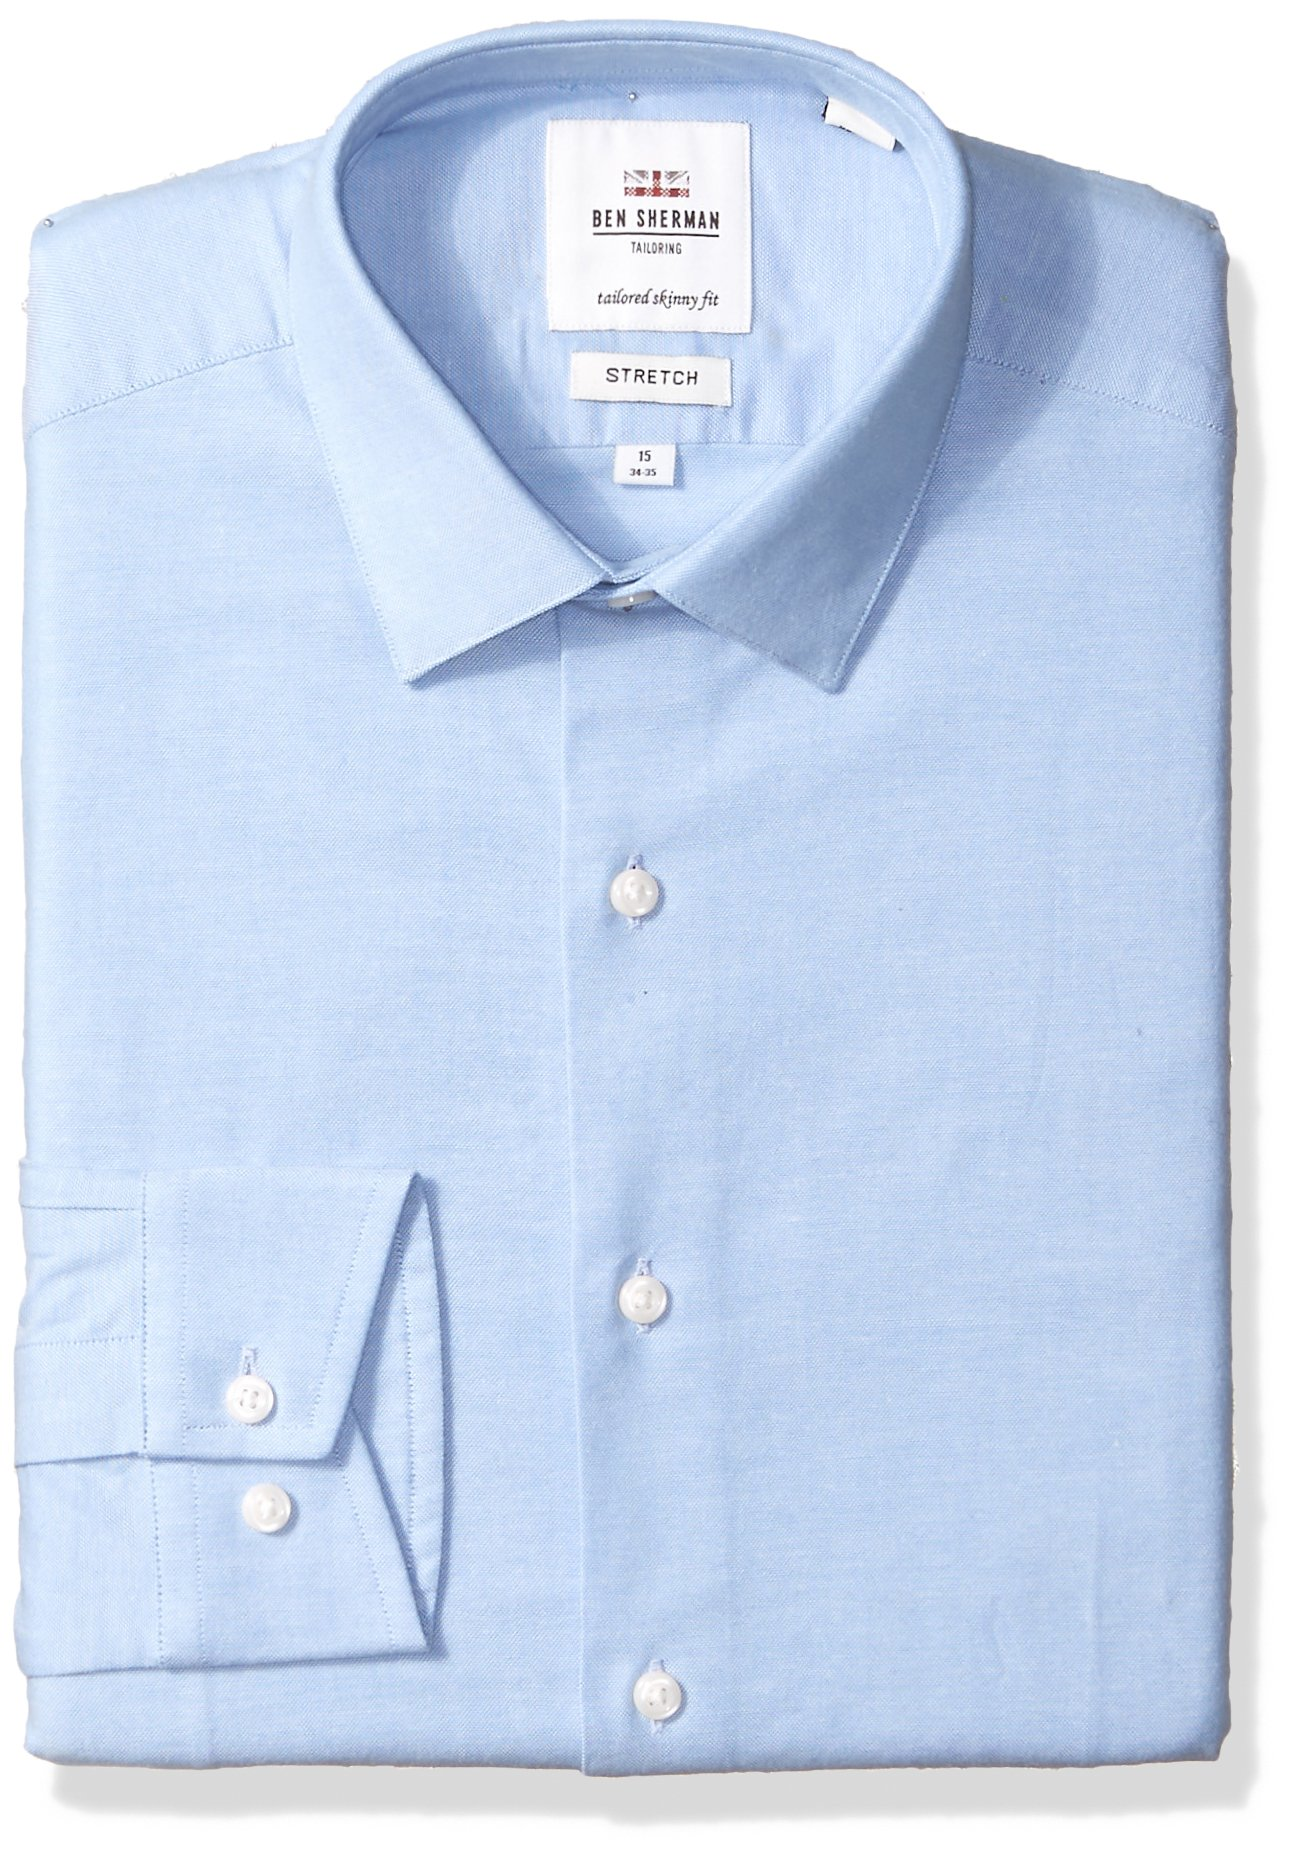 Ben Sherman Men's Stretch Oxford Skinny Fit Dress Shirt, Light Blue, 16'' Neck 34/35'' Sleeve by Ben Sherman